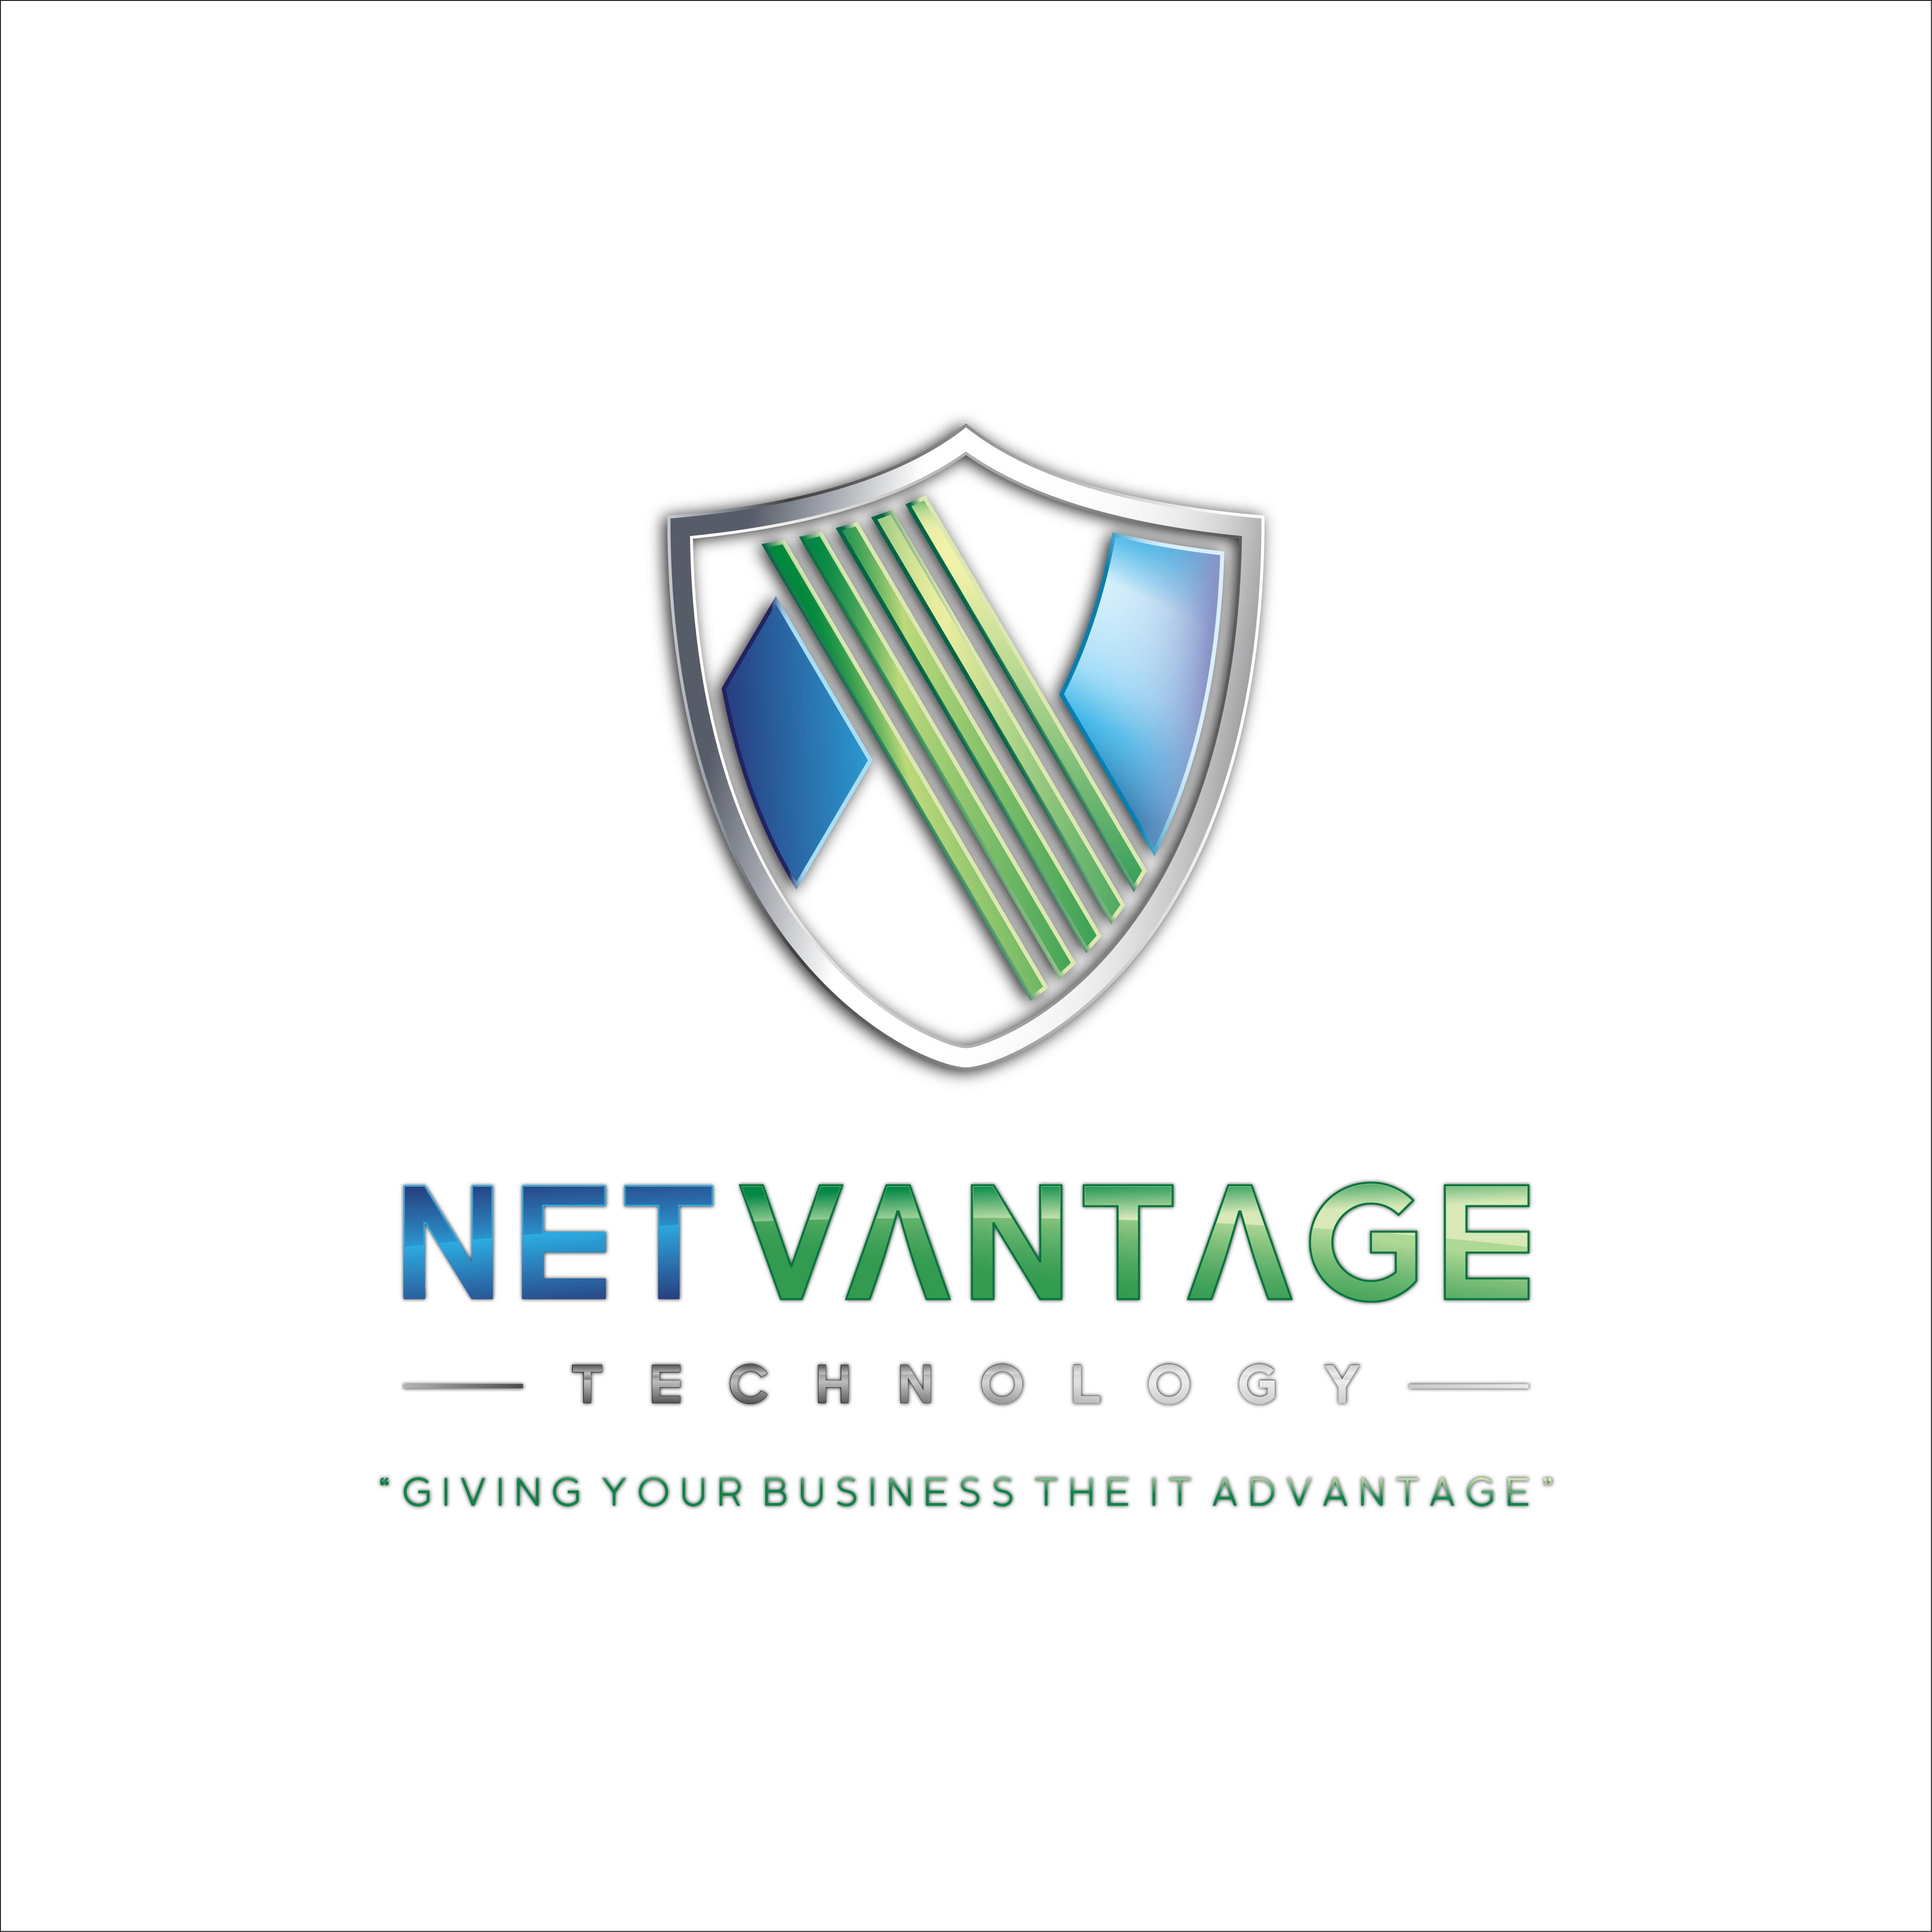 NetVantage Technology needs new logo & Business card - Provided details and examples